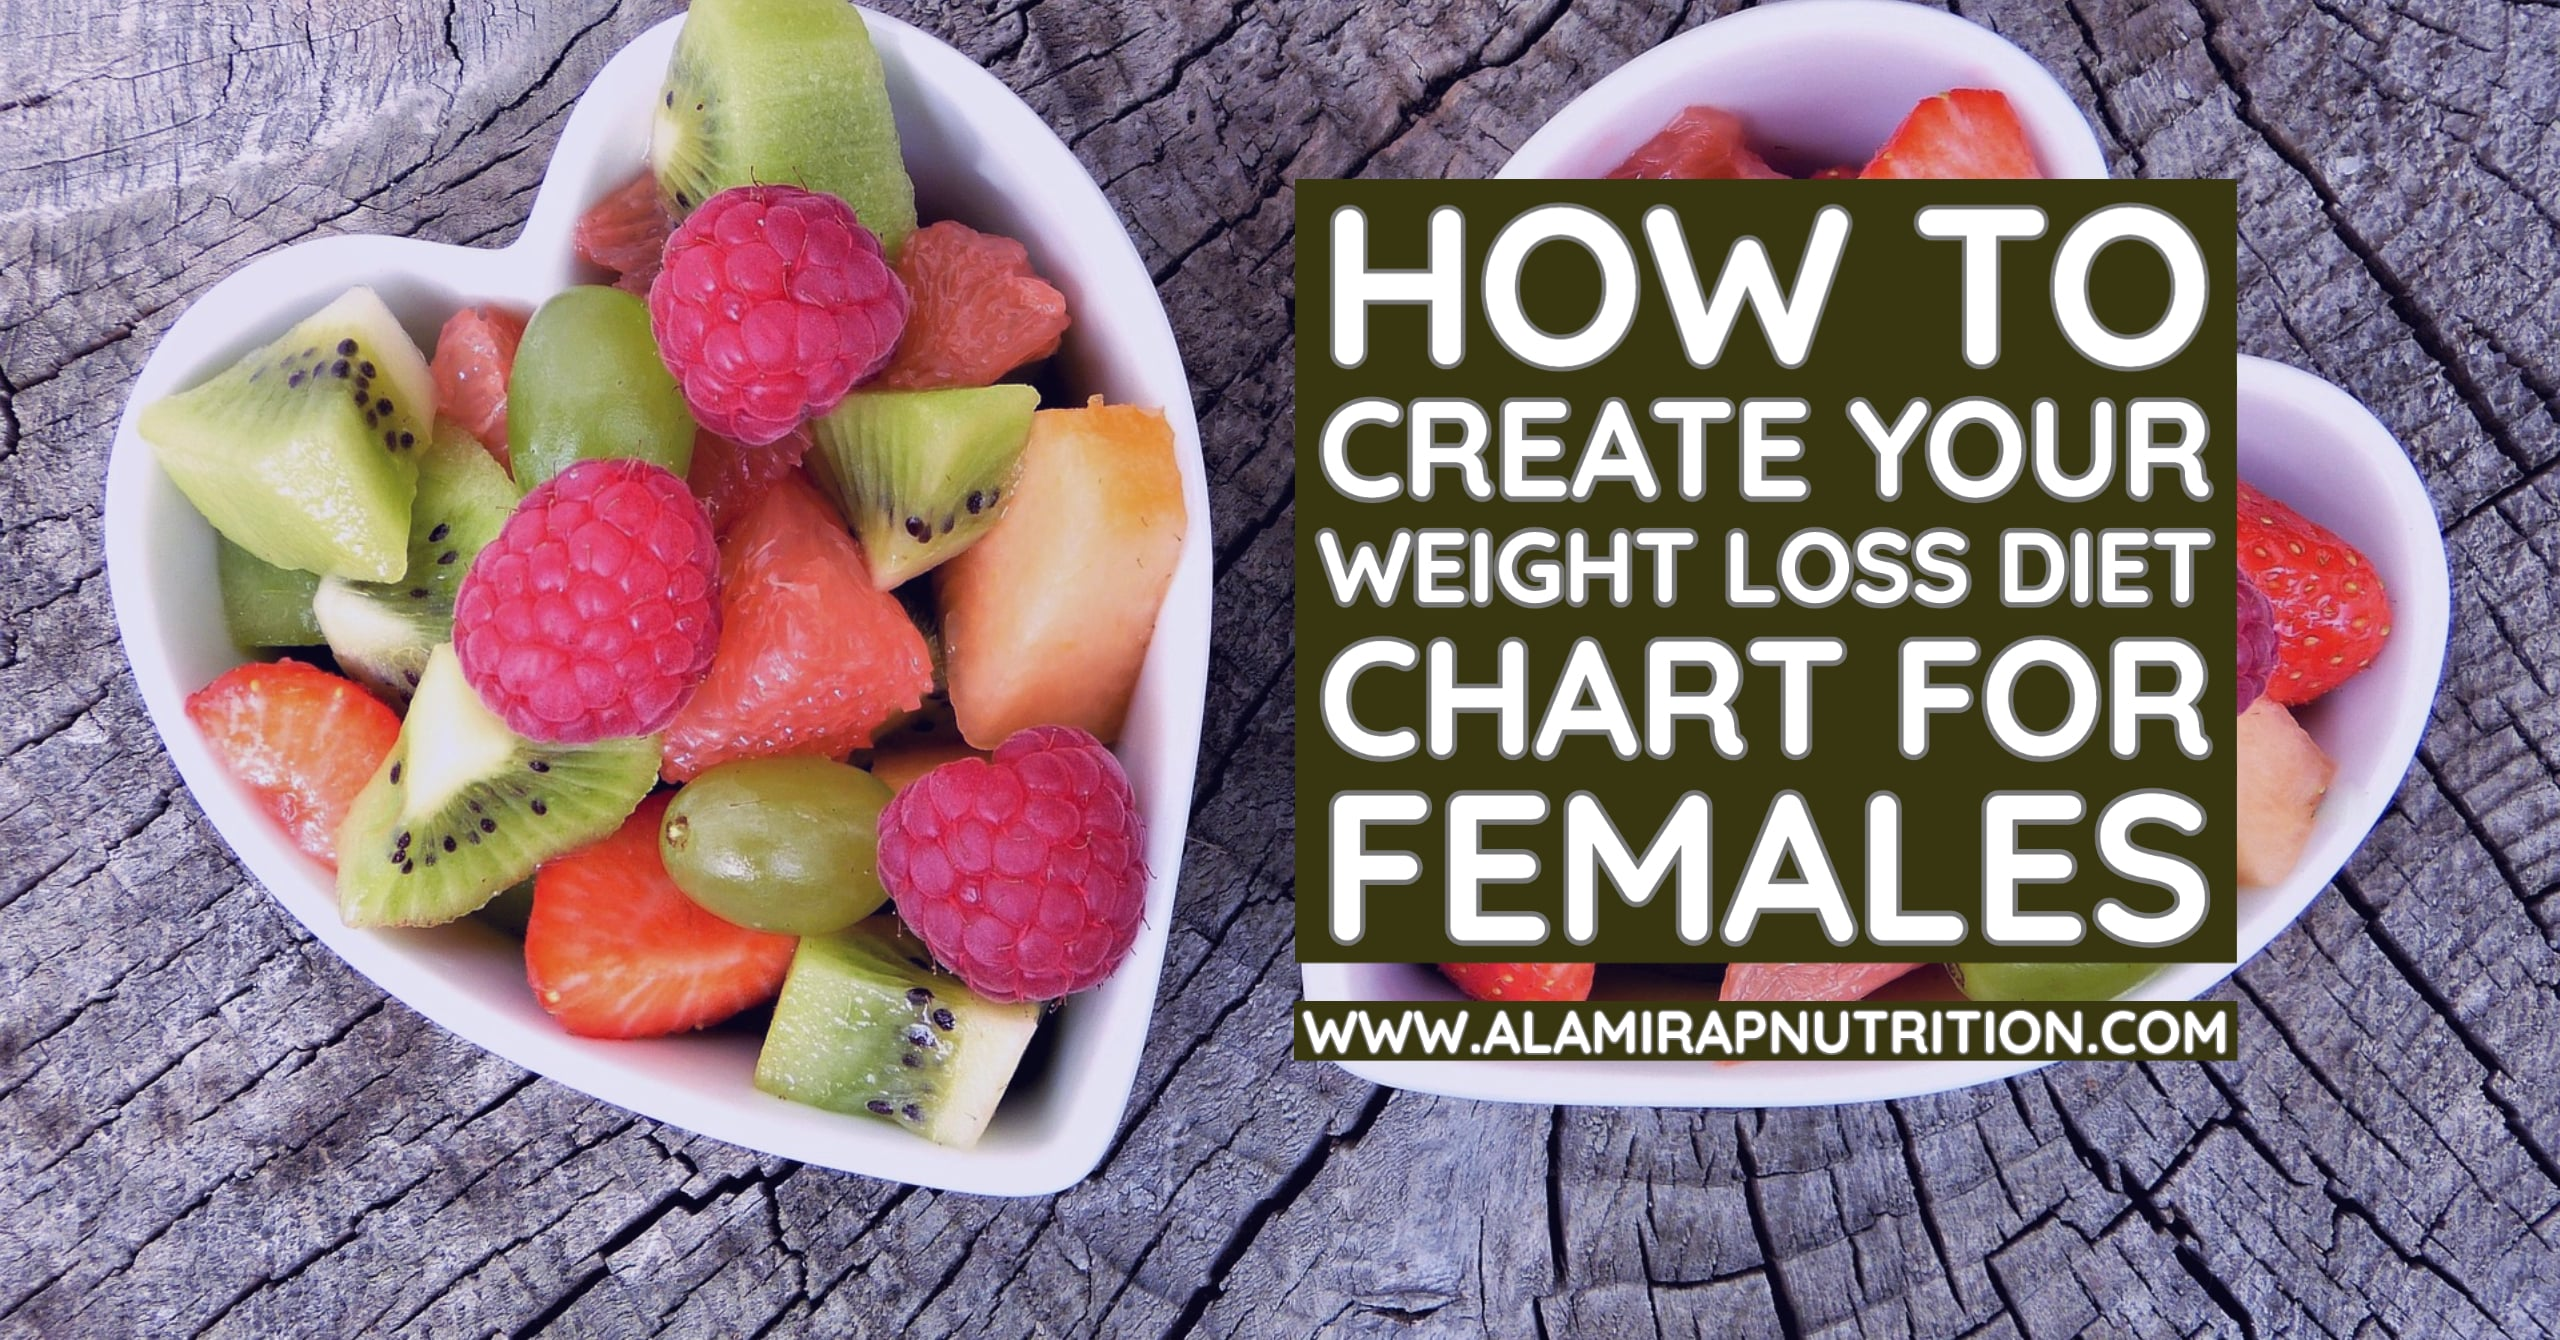 How to Create Your Weight Loss Diet Chart for Females